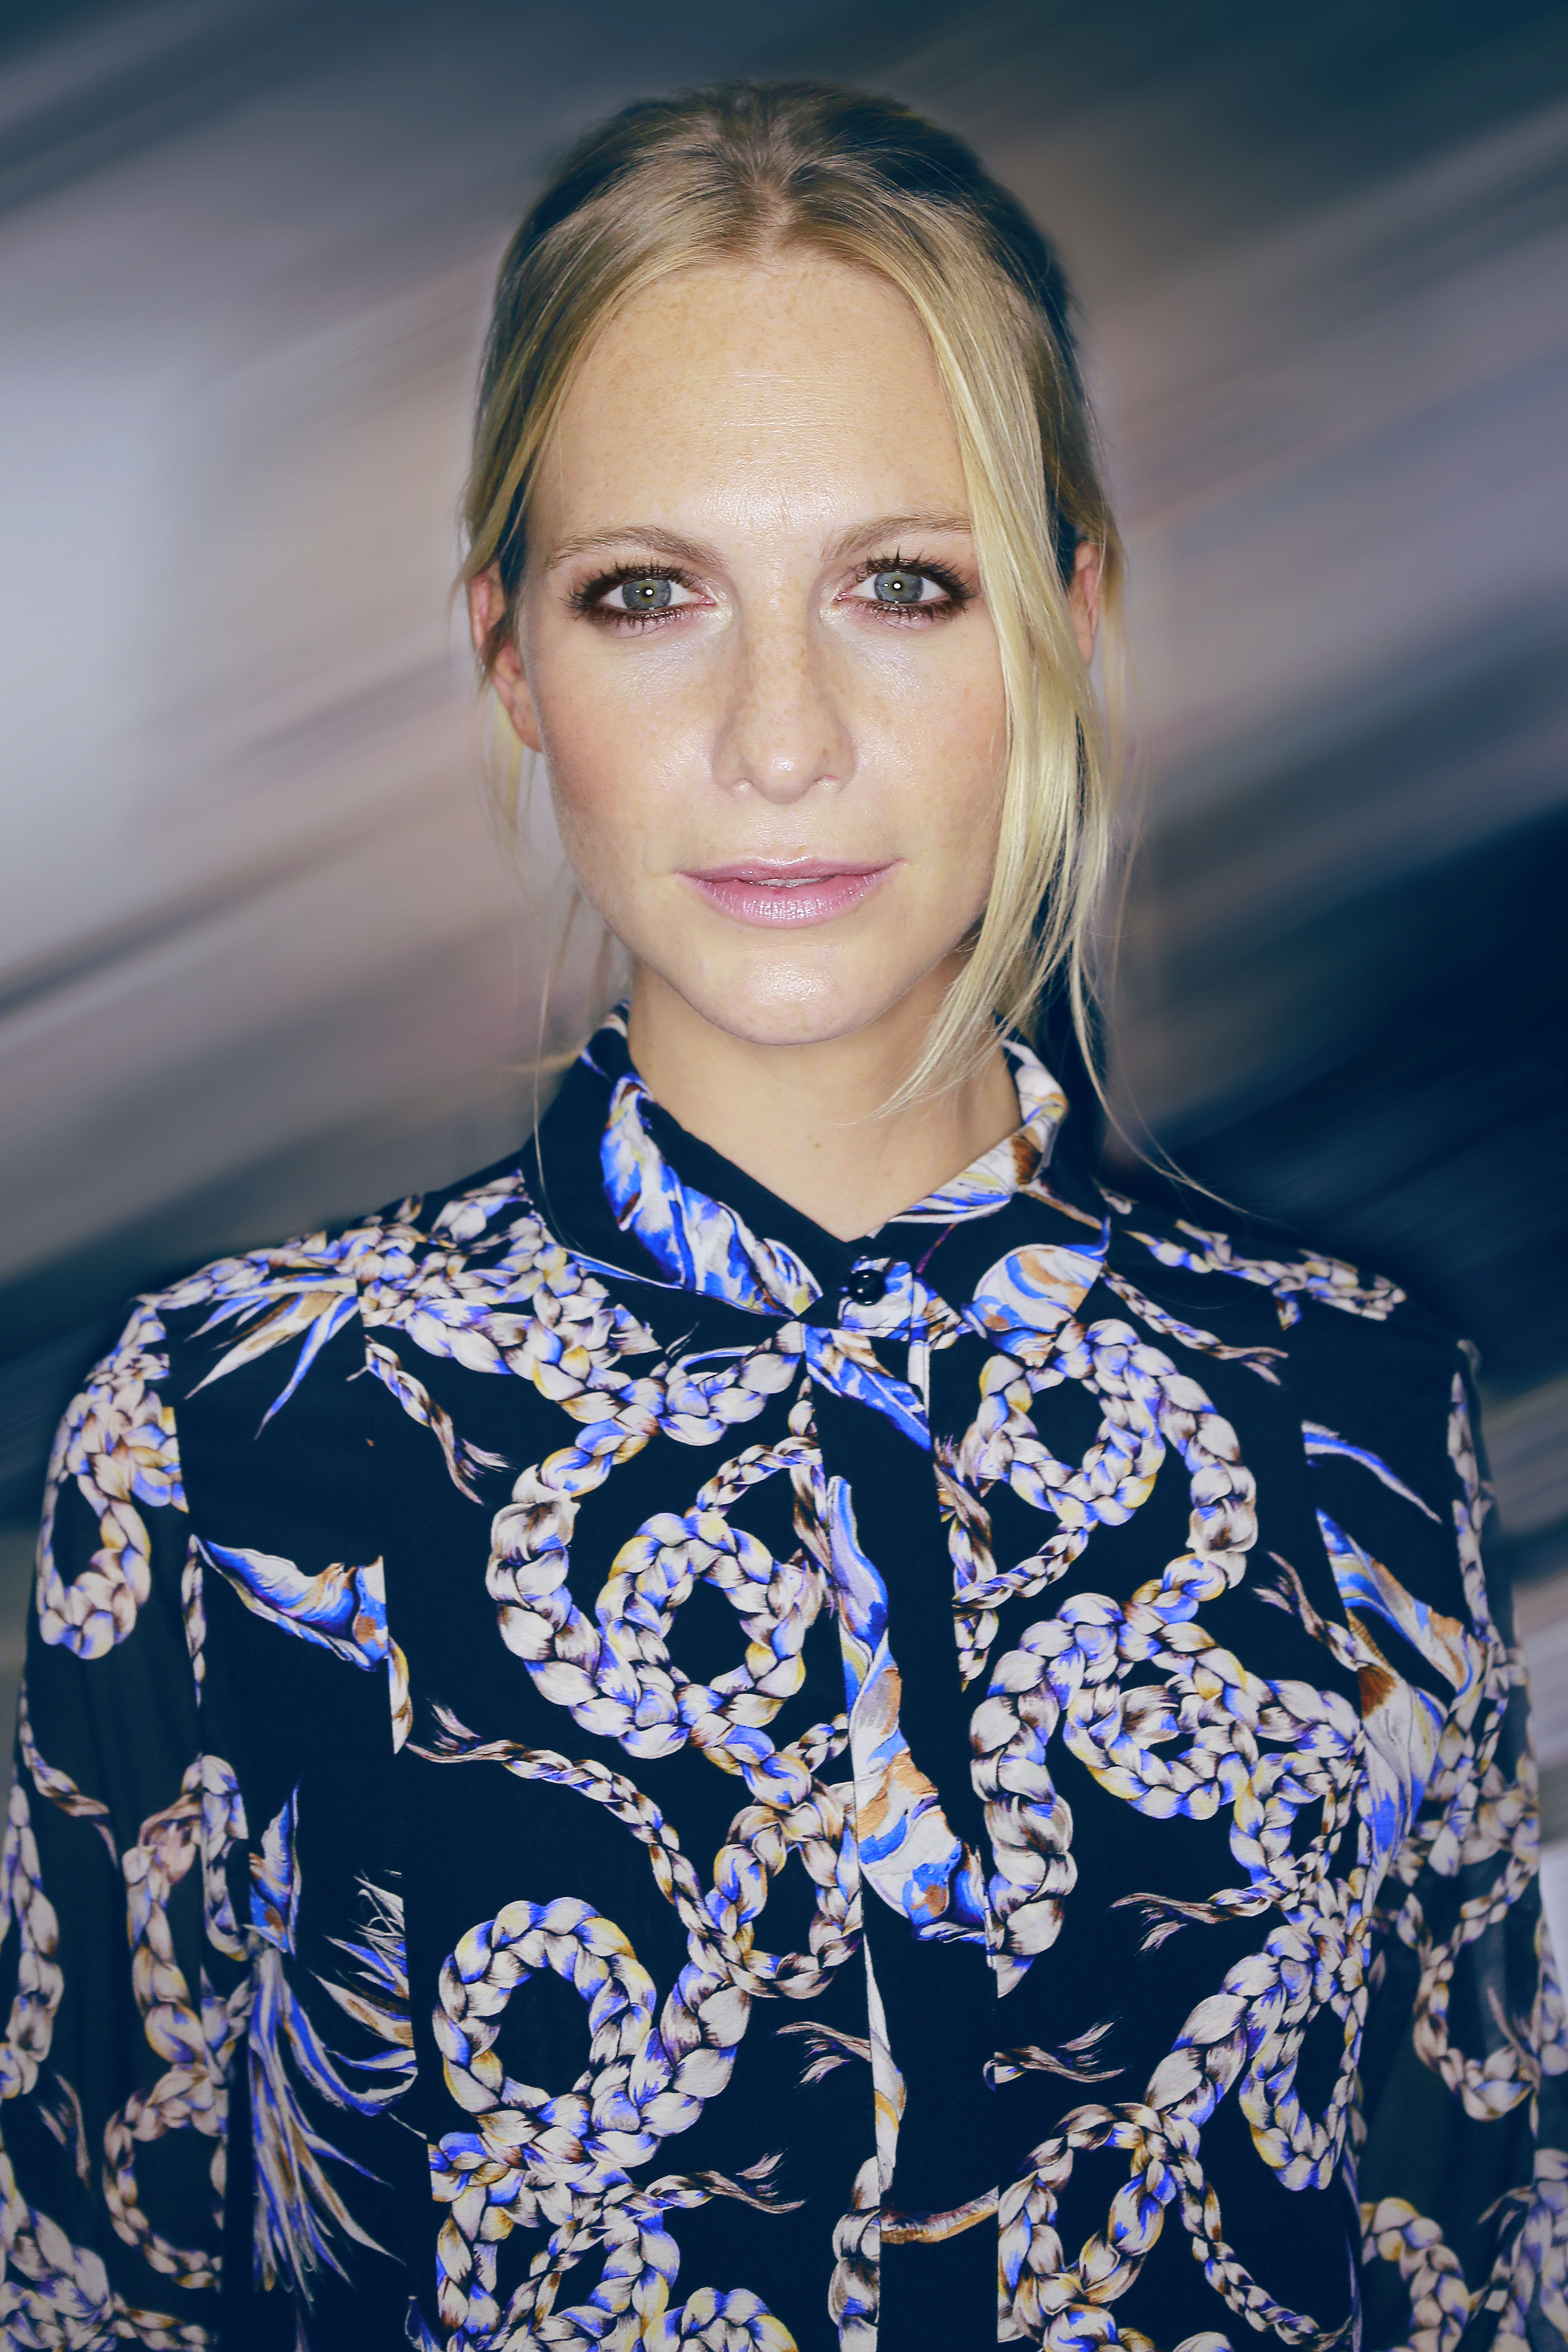 The 32-year old daughter of father (?) and mother(?) Poppy Delevingne in 2018 photo. Poppy Delevingne earned a  million dollar salary - leaving the net worth at 1.5 million in 2018